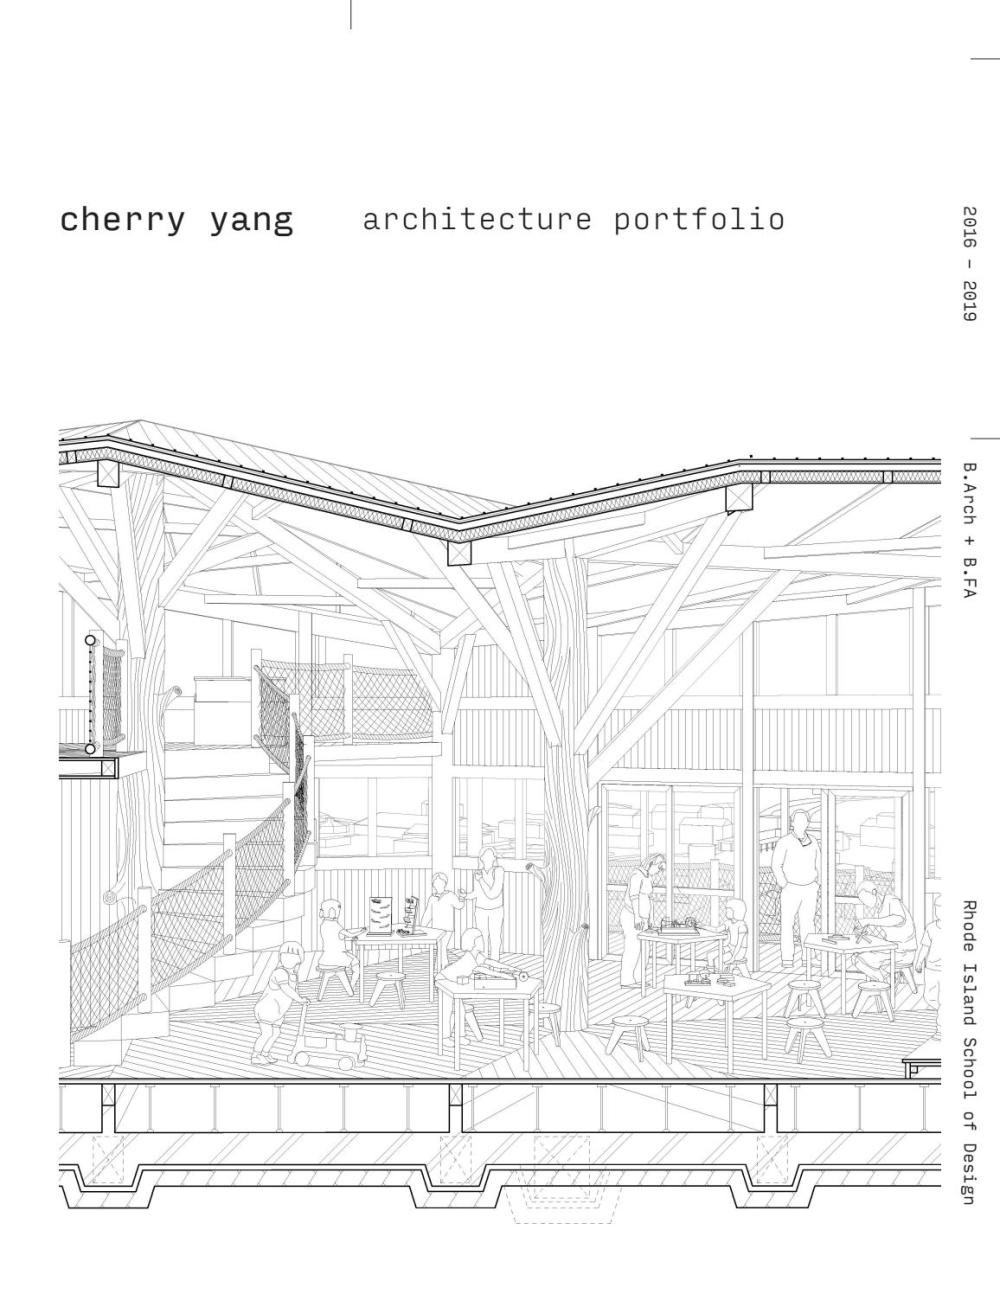 medium resolution of cherry yang risd portfolio 2019